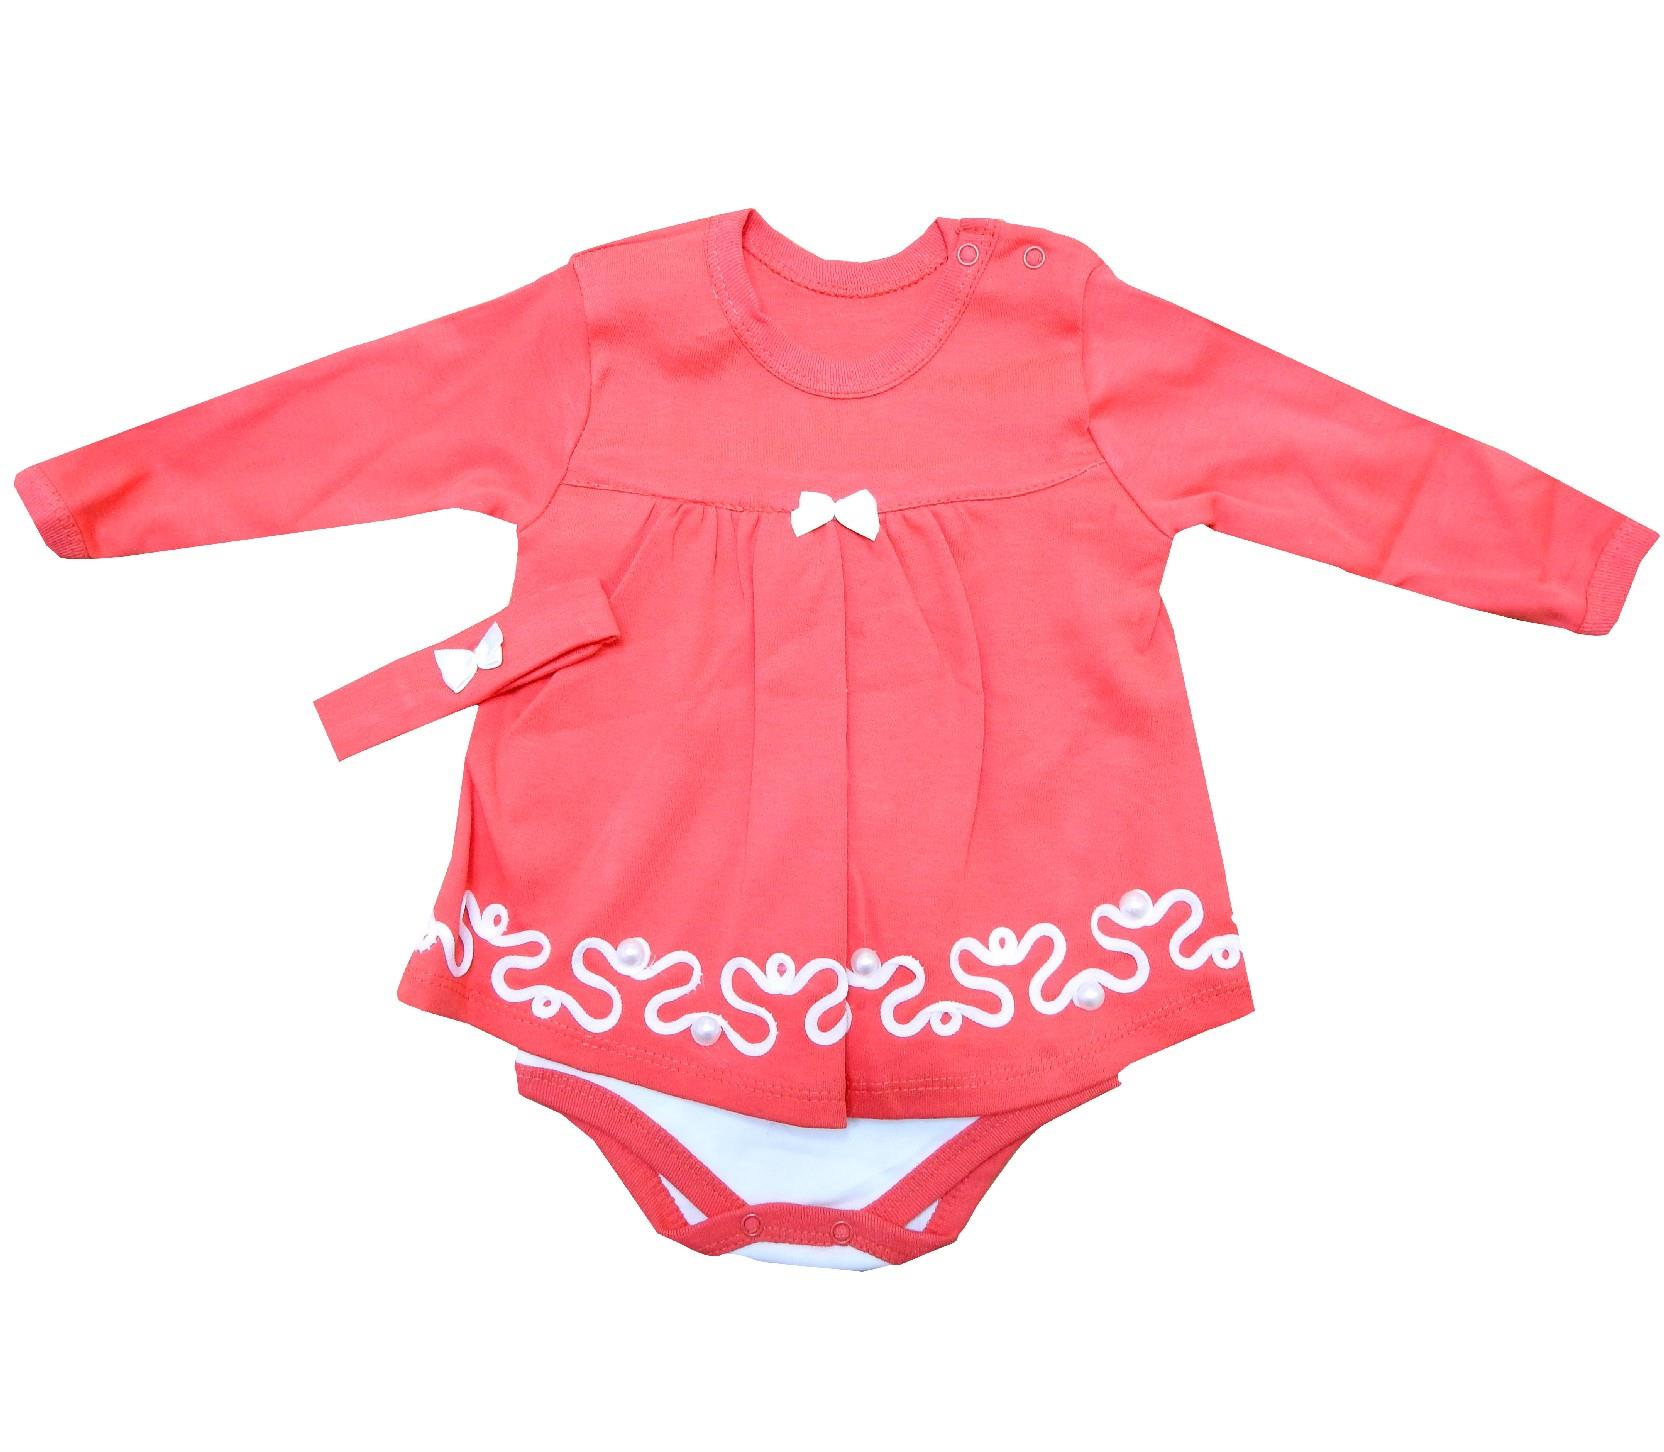 cheapest Wholesale Bebe Dress Bad 3-6-9-12 Months